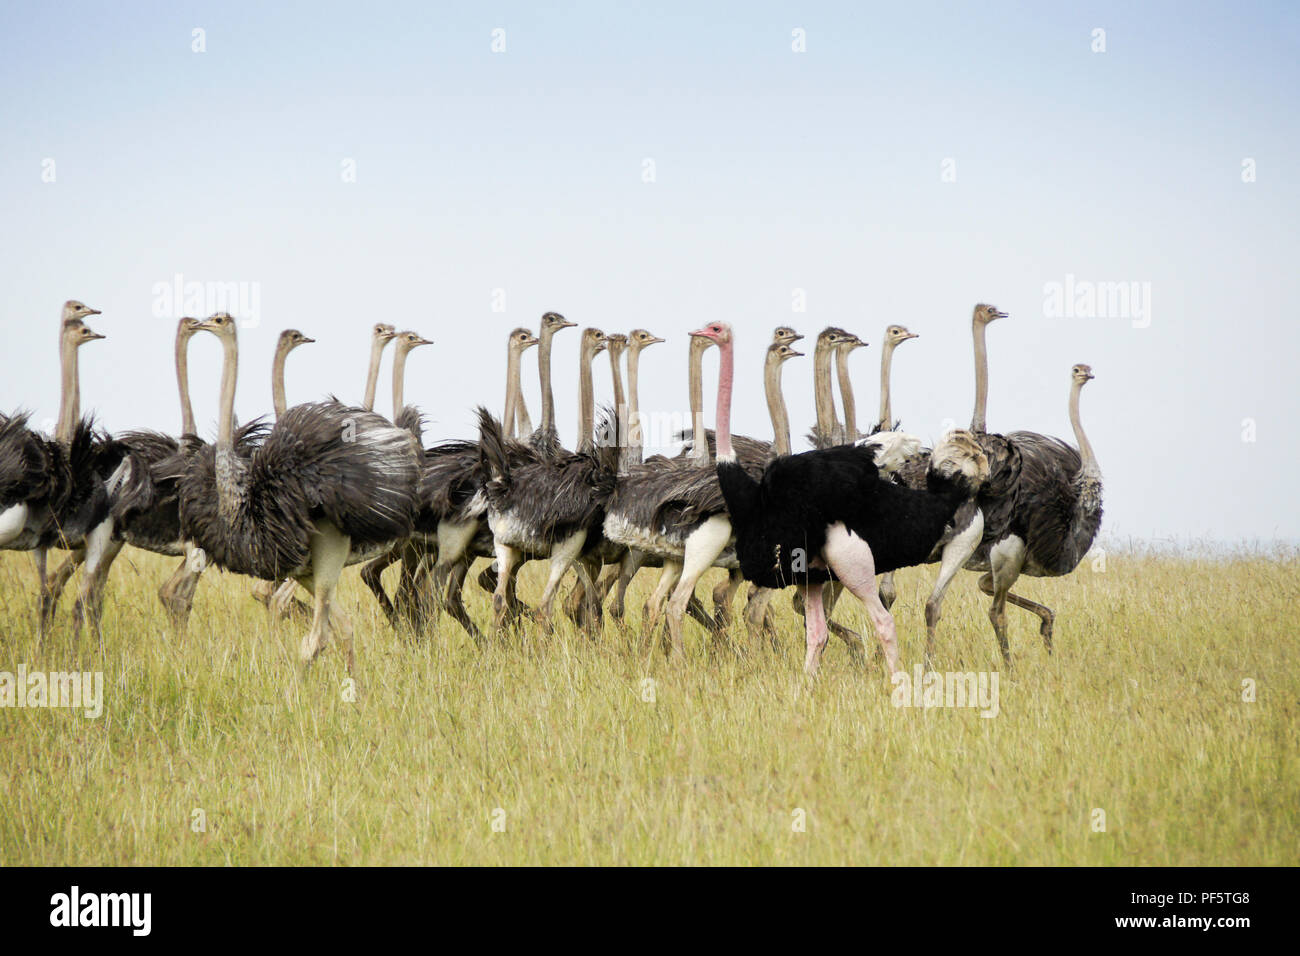 Male Masai ostrich rounding up a flock of juvenile ostriches, Masai Mara Game Reserve, Kenya - Stock Image